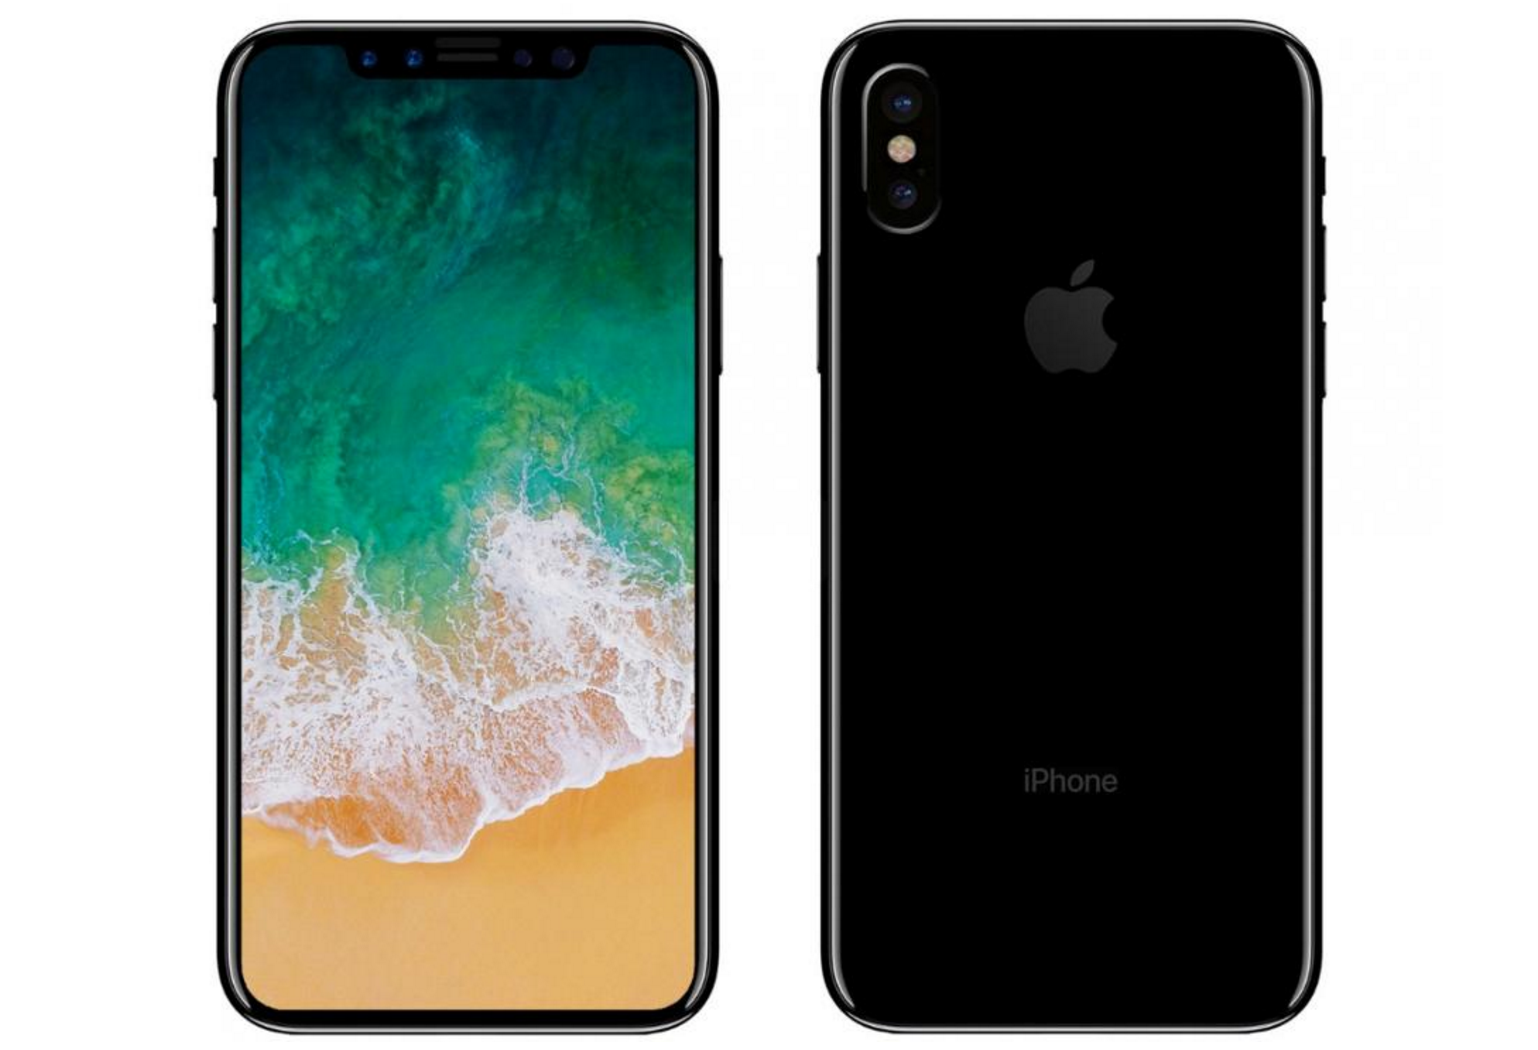 Apple Iphone 8 Design Back And Front